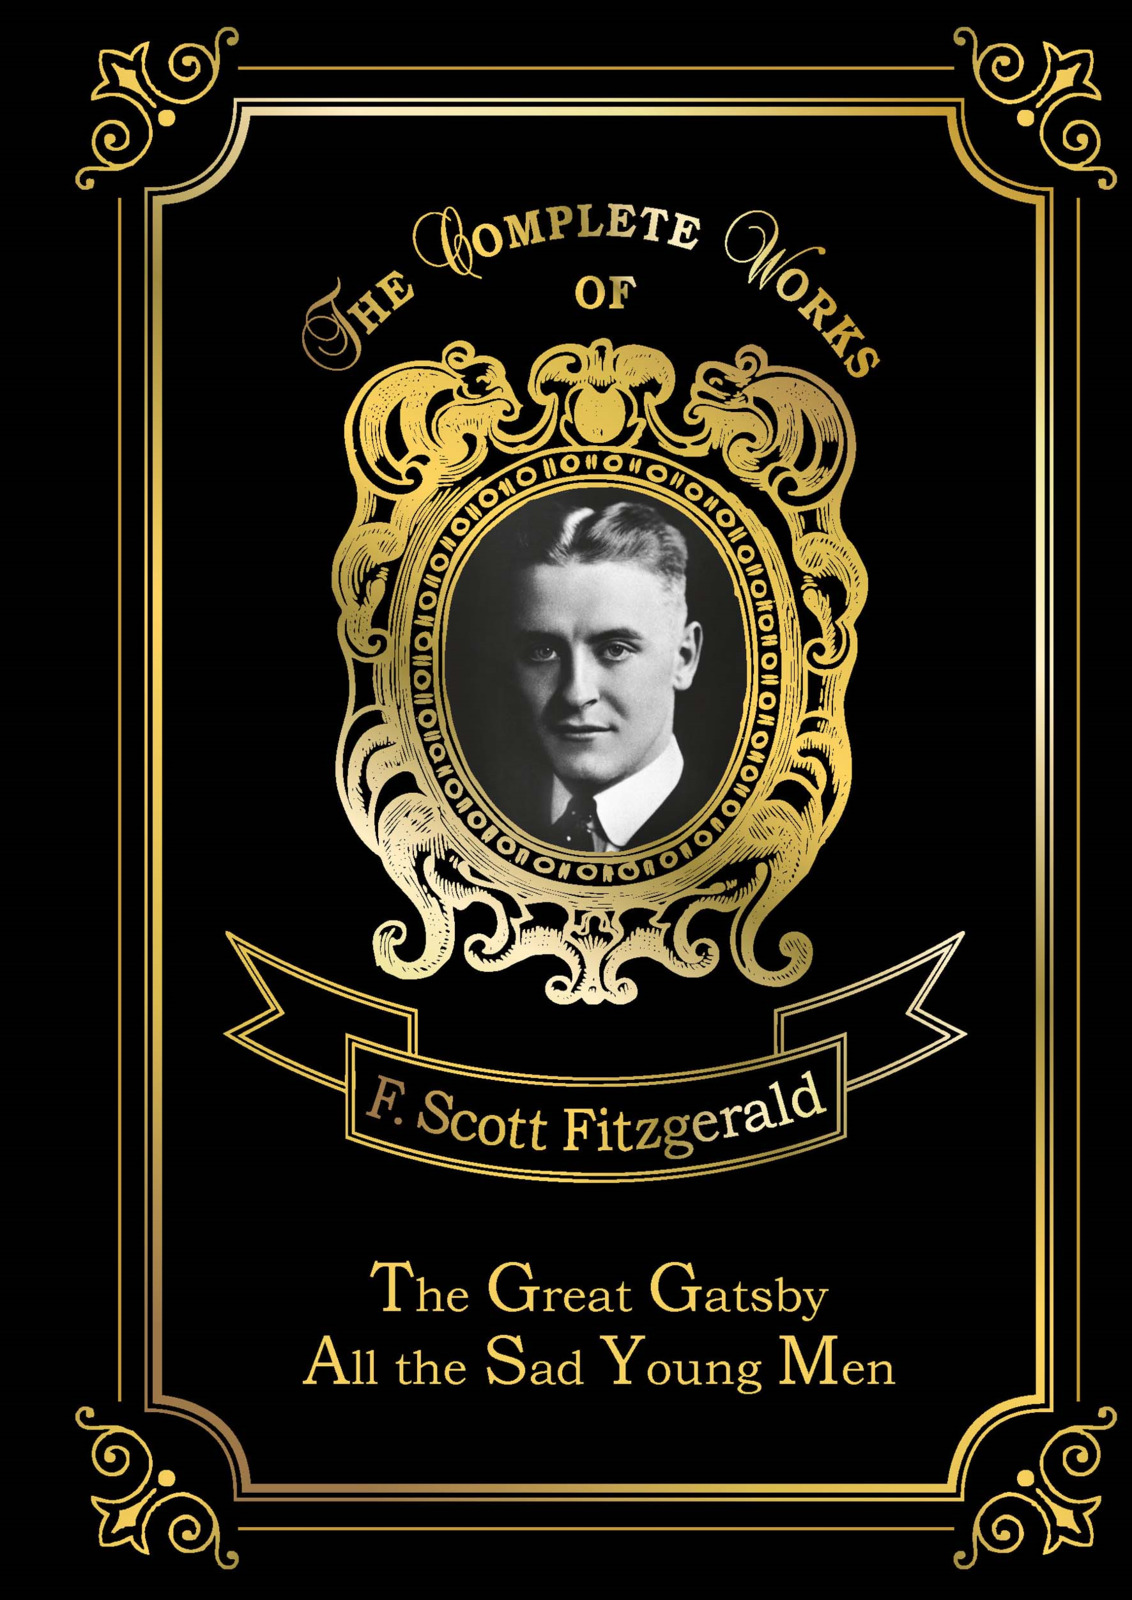 F. S. Fitzgerald The Great Gatsby & All the Sad Young Men all the sad young men